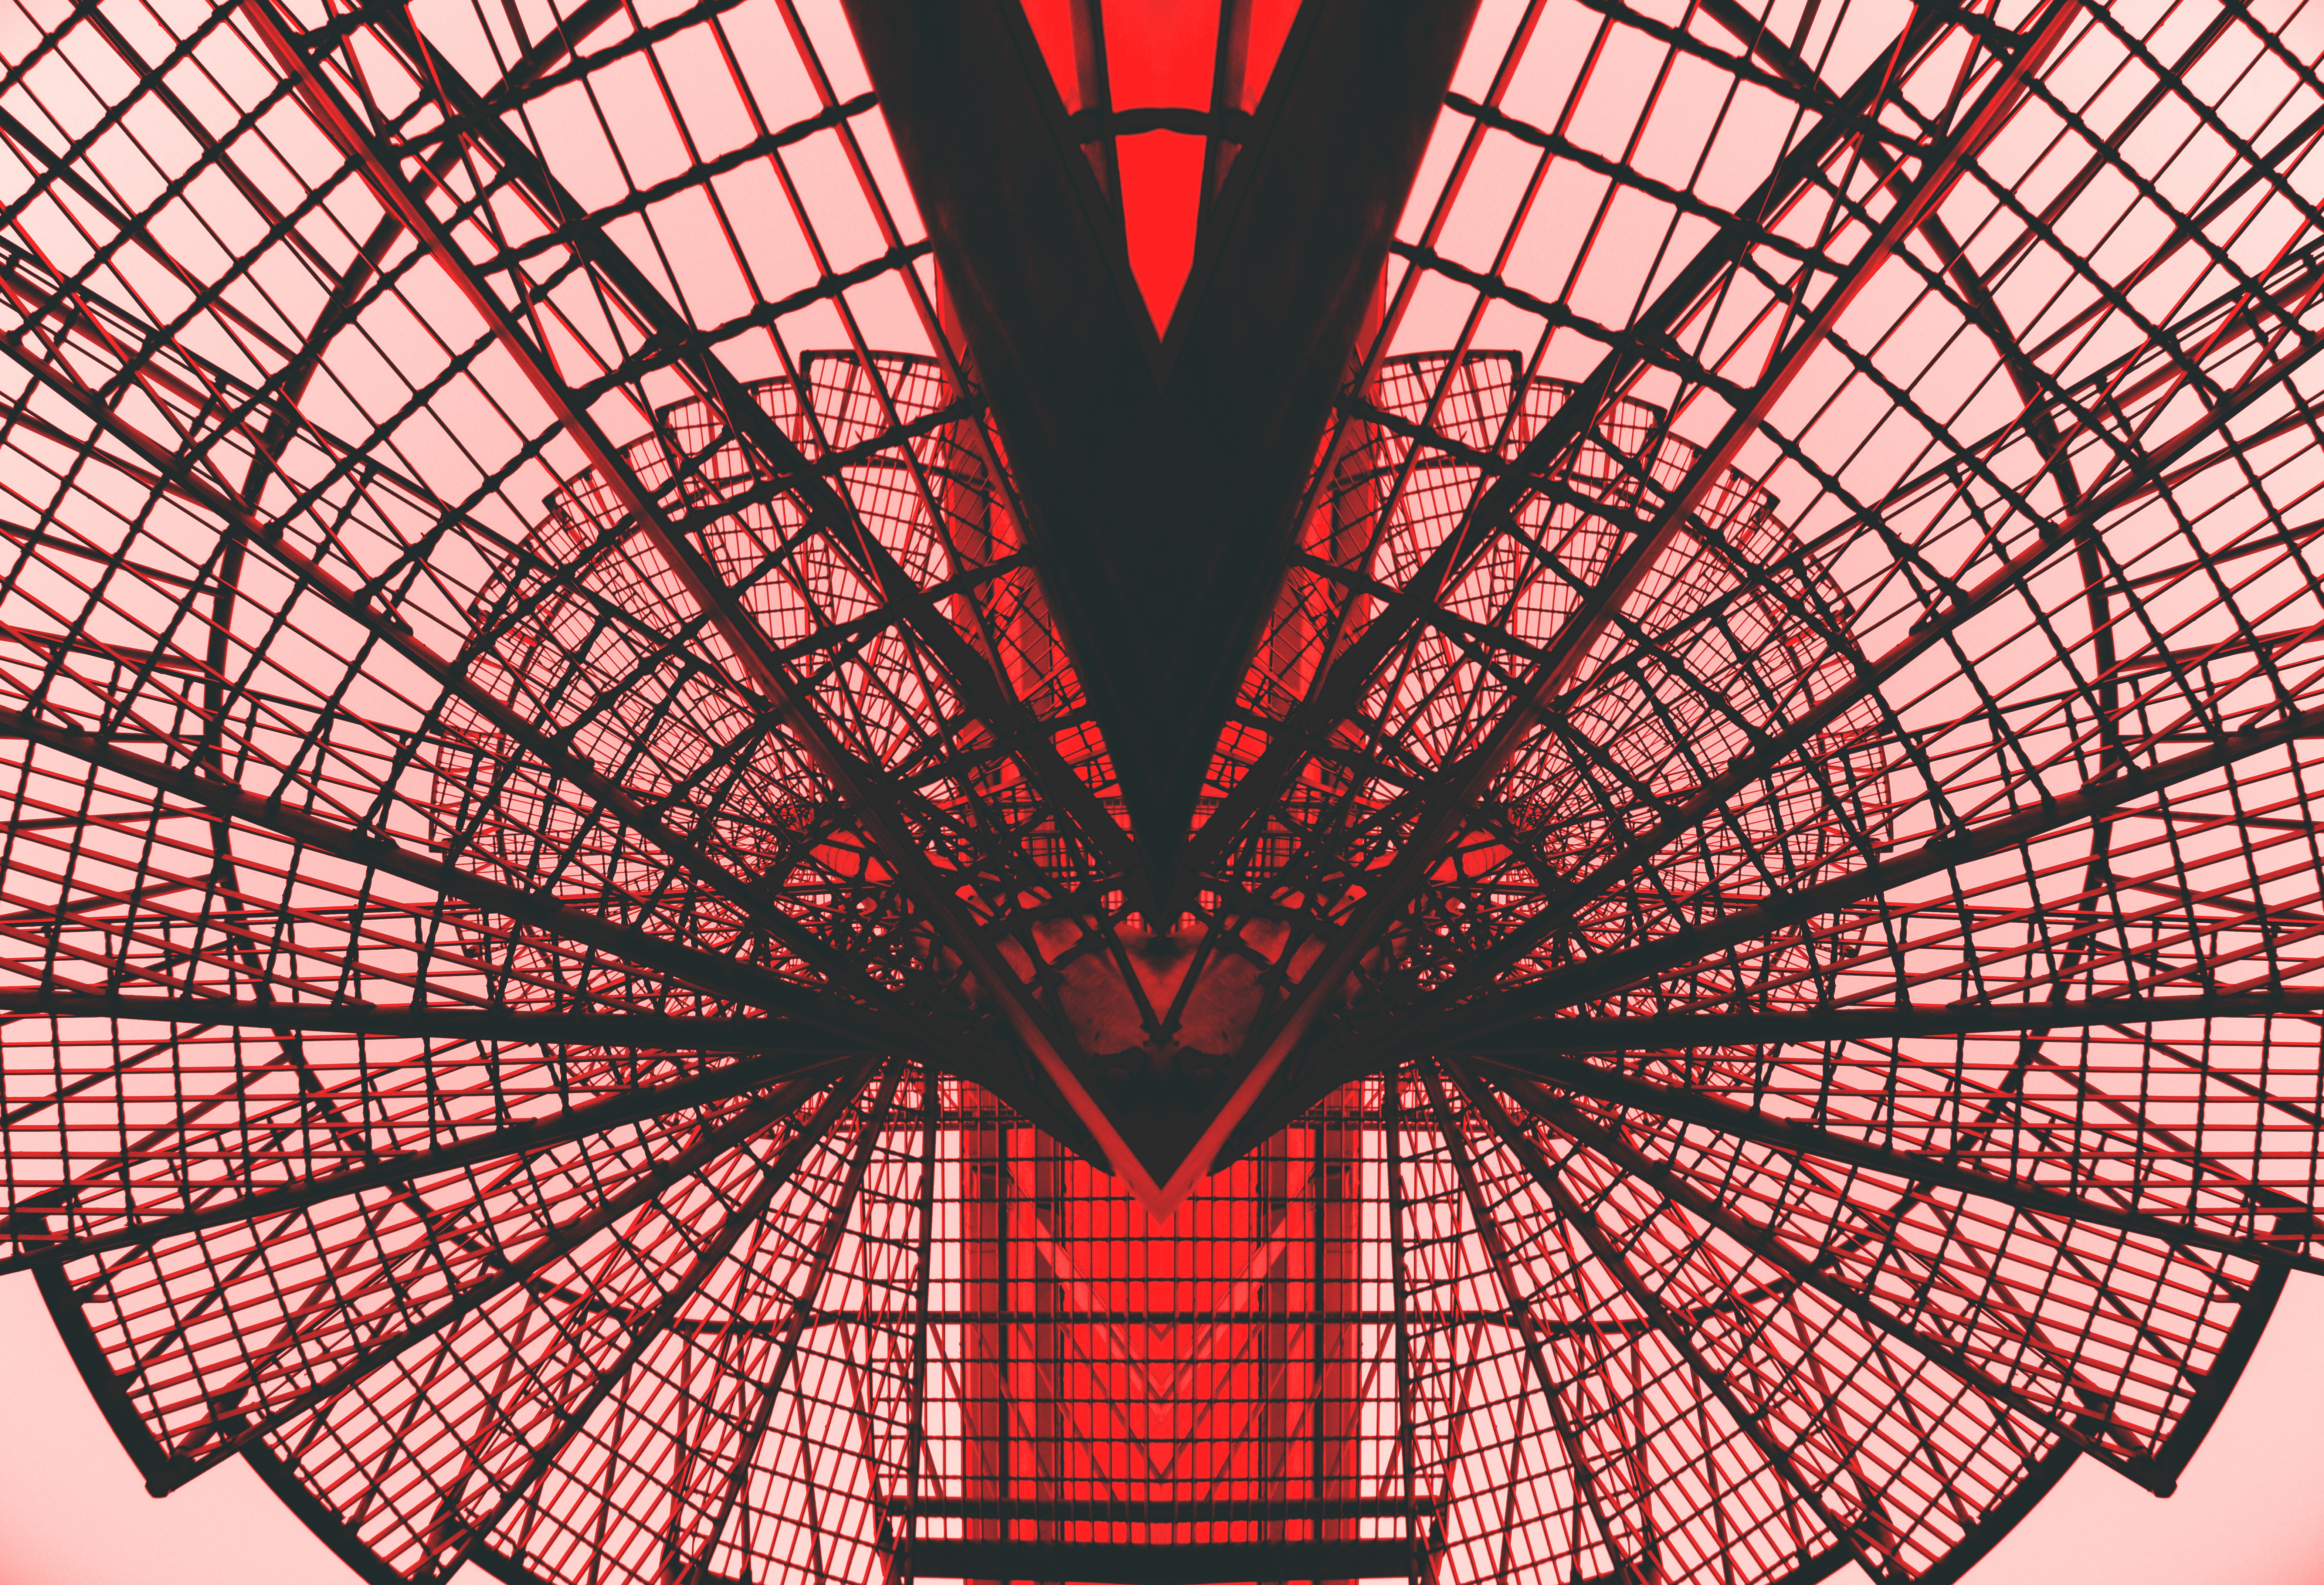 Low-angle Photography of Red Metal Tower